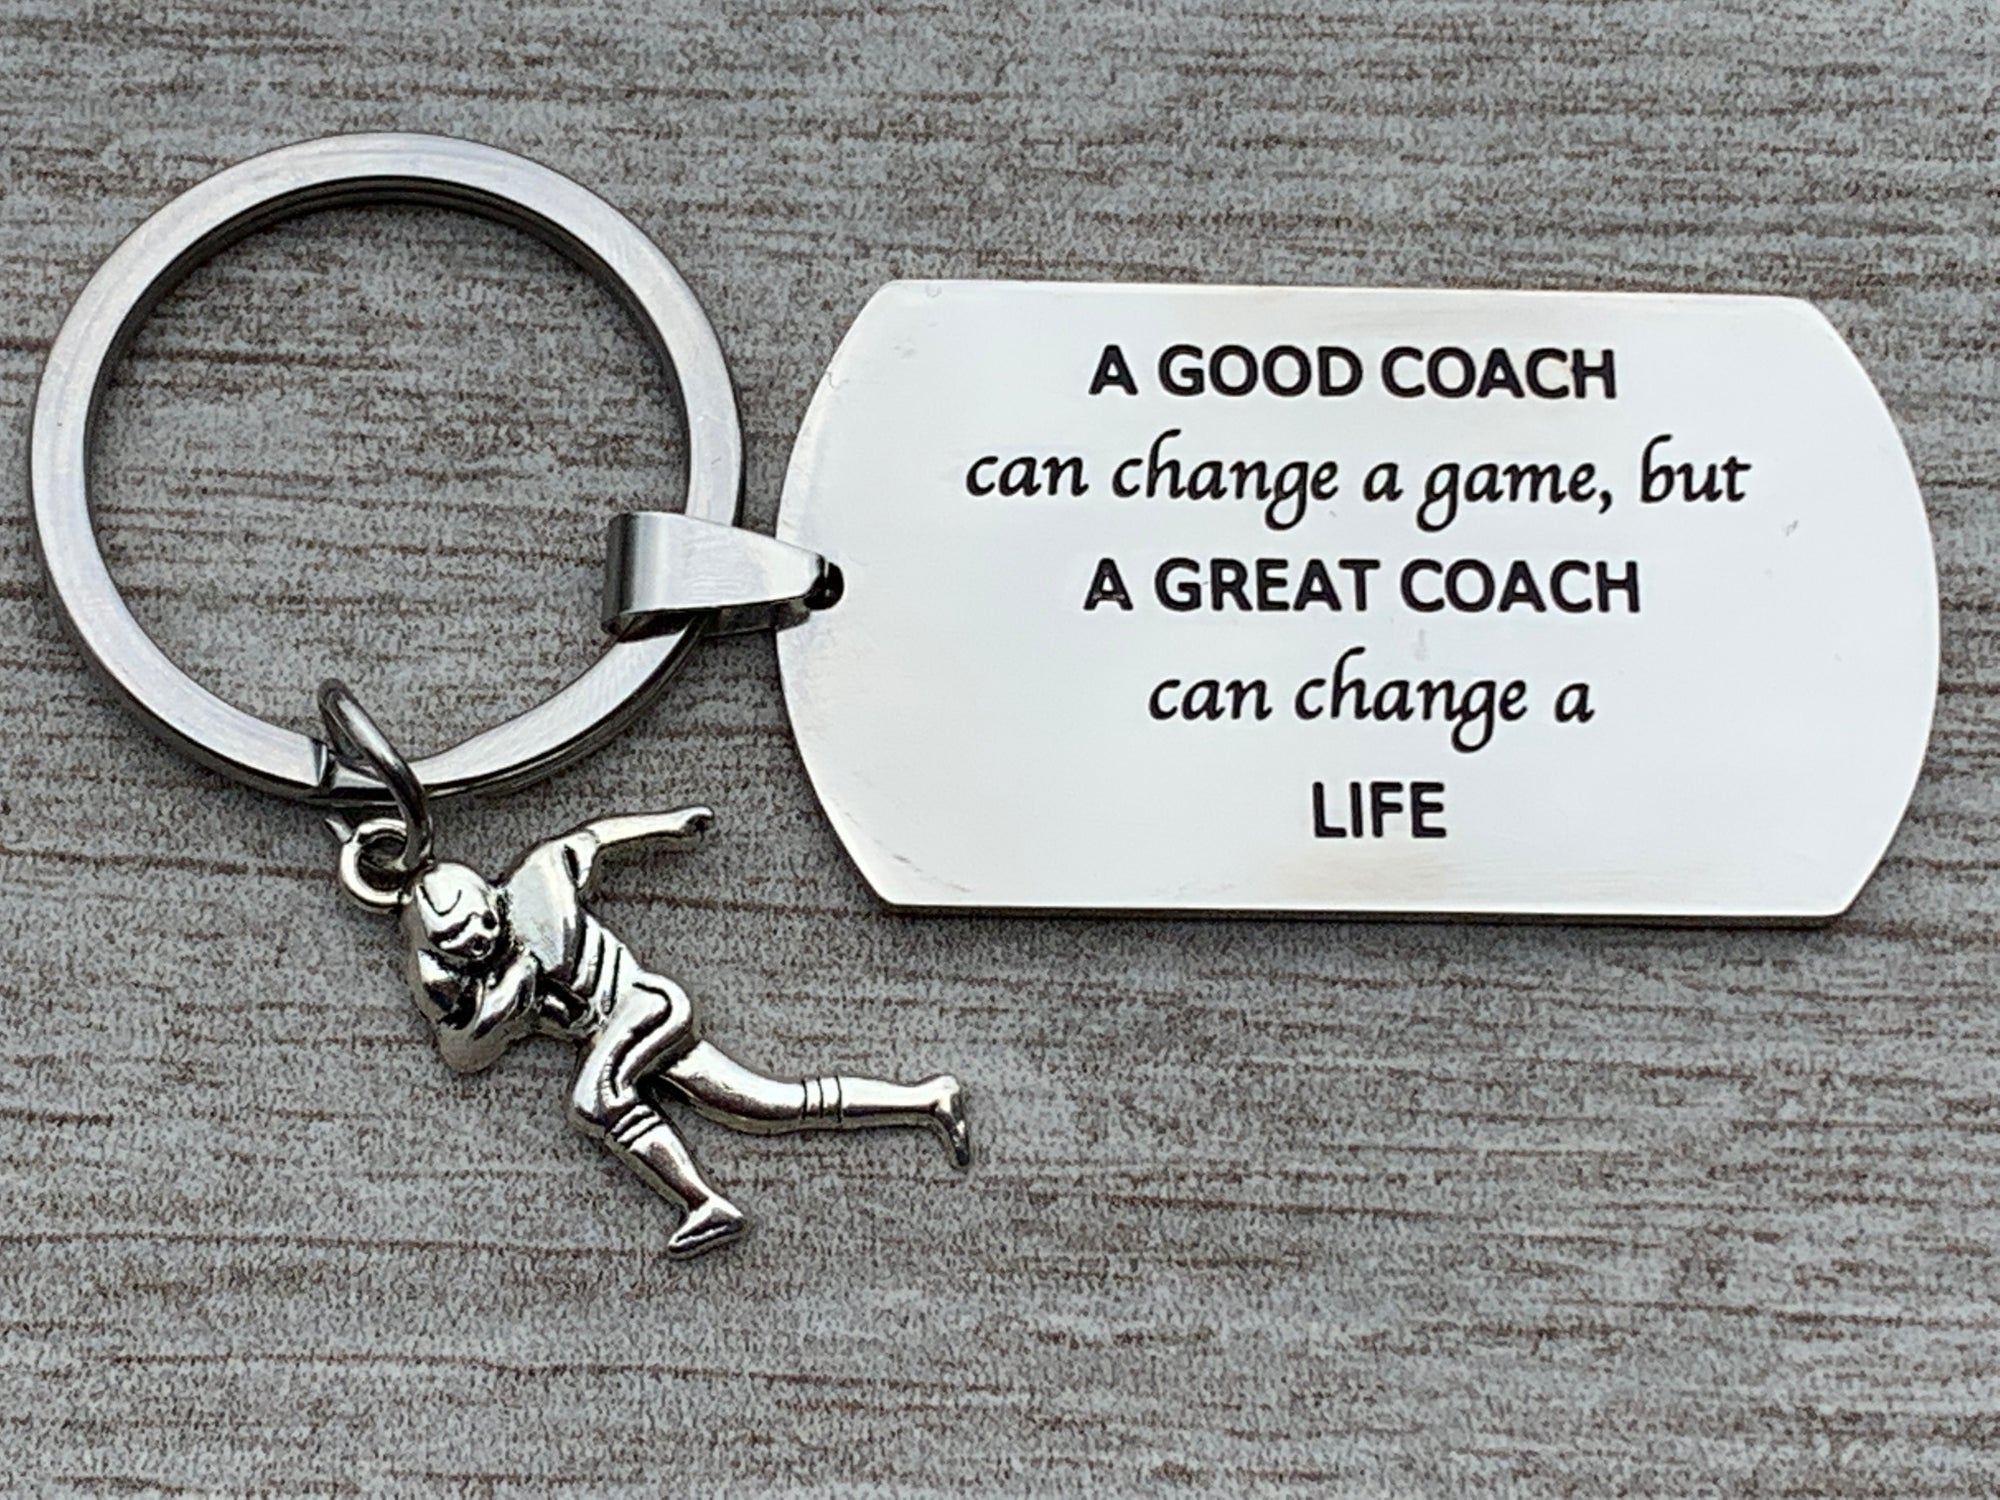 Football Coach Keychain - A Good Coach Can Change a Game But a Great Coach Can Change a Life